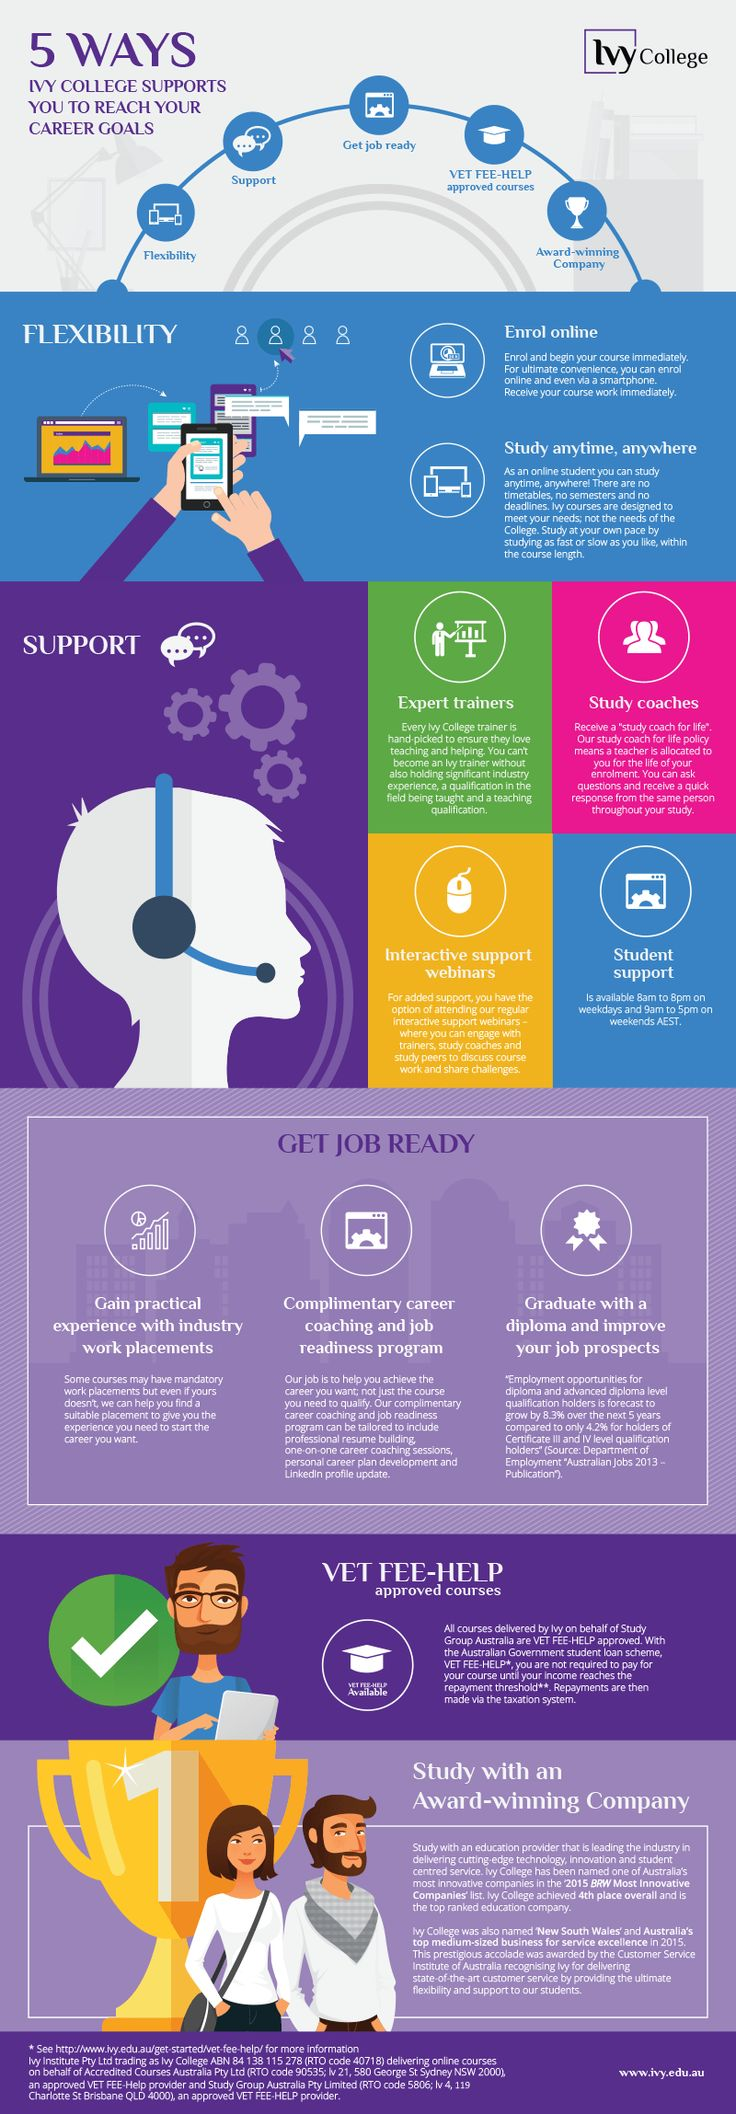 5 Ways Ivy College Supports You To Reach Your Career Goals #Infographic  What Are Your Career Goals